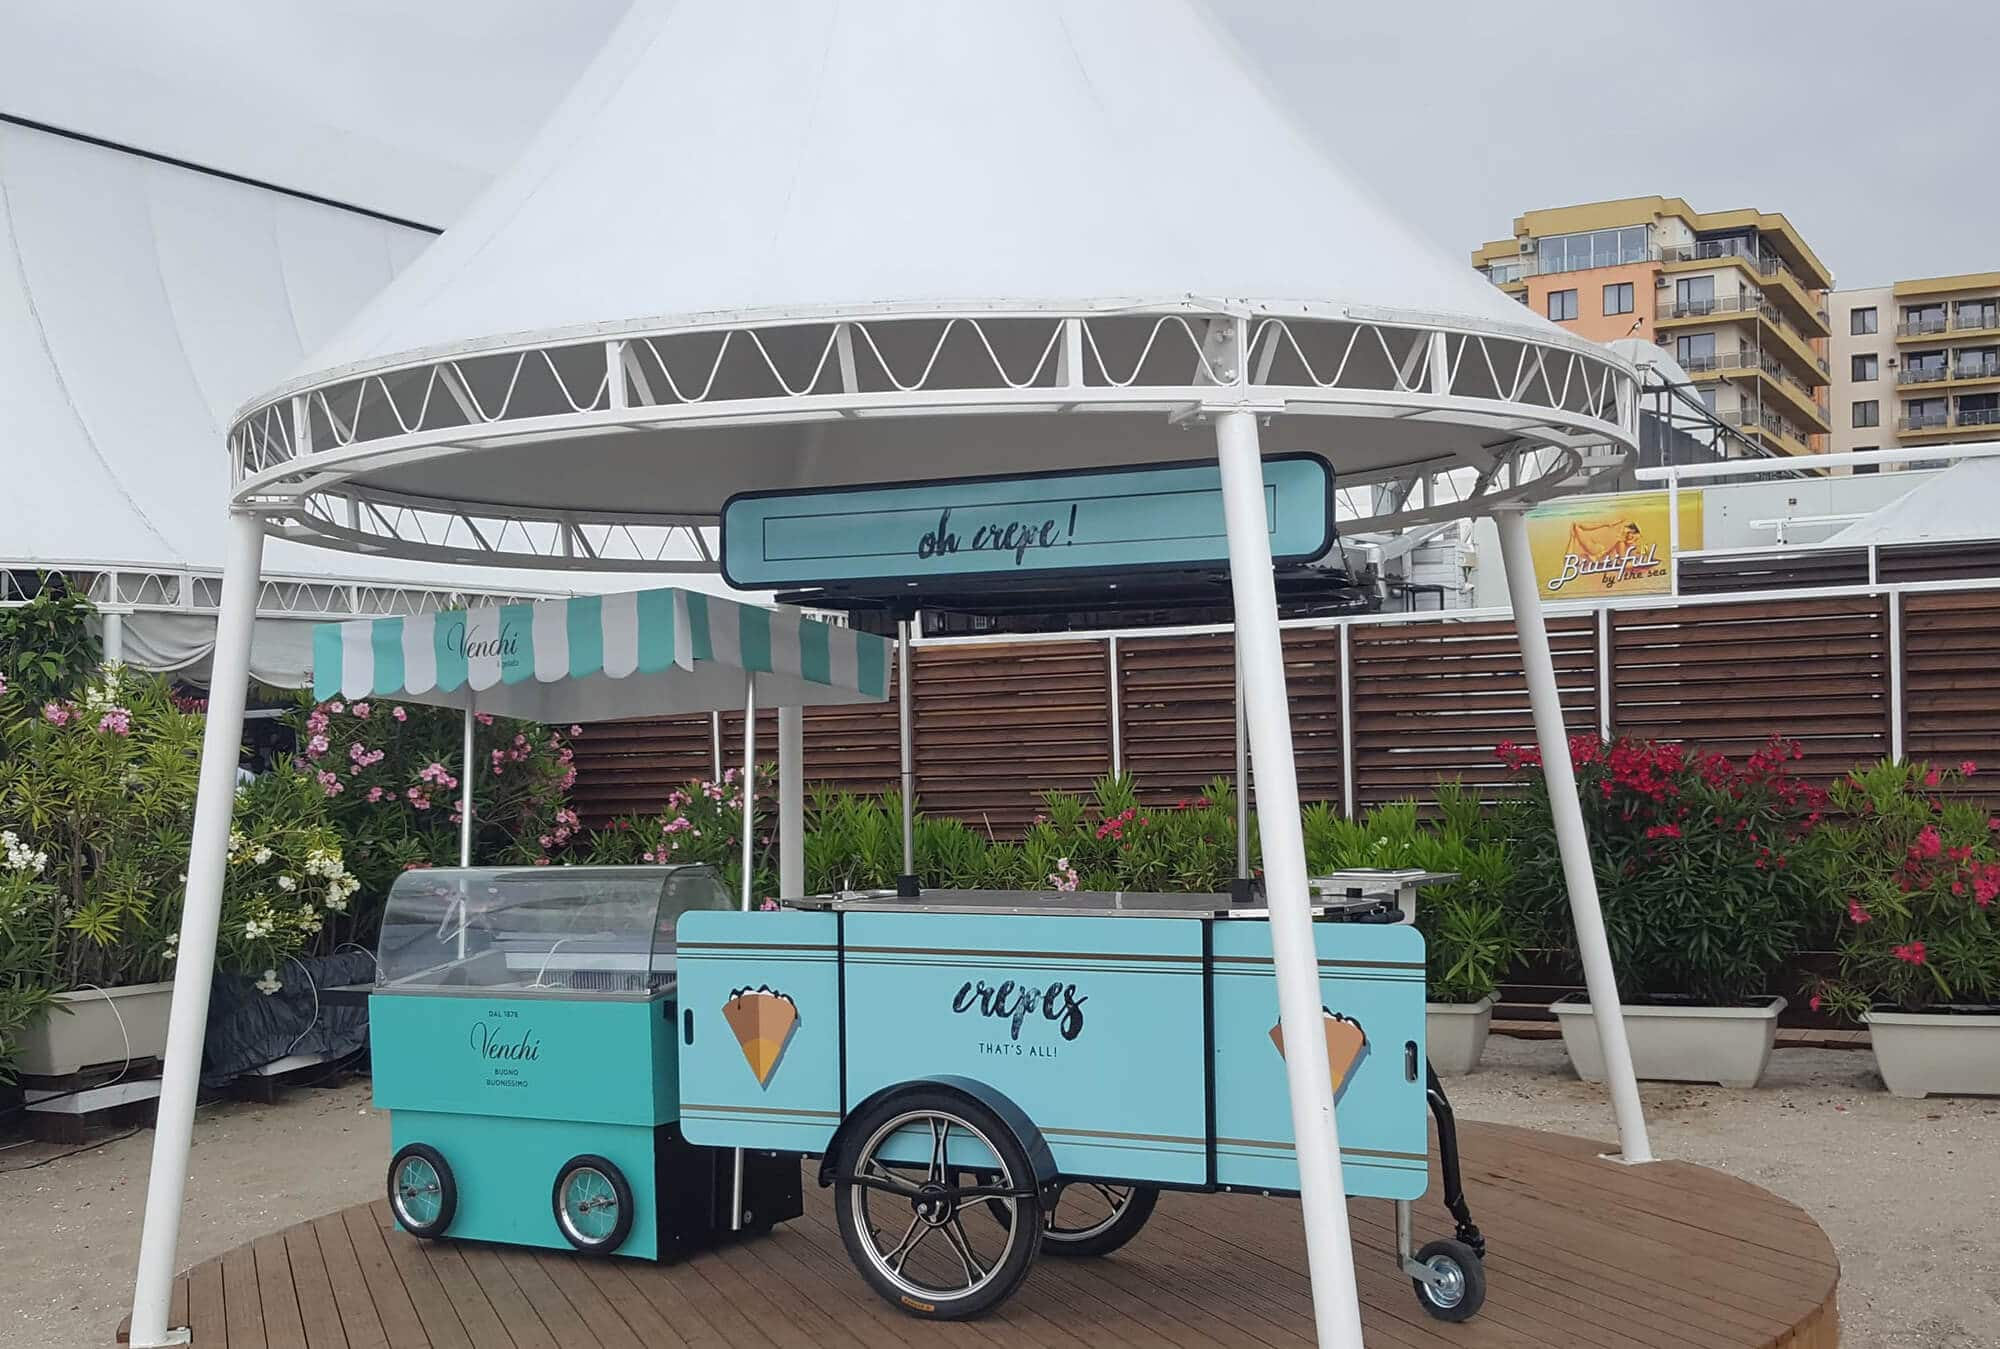 Crepe cart made by Bizz On Wheels